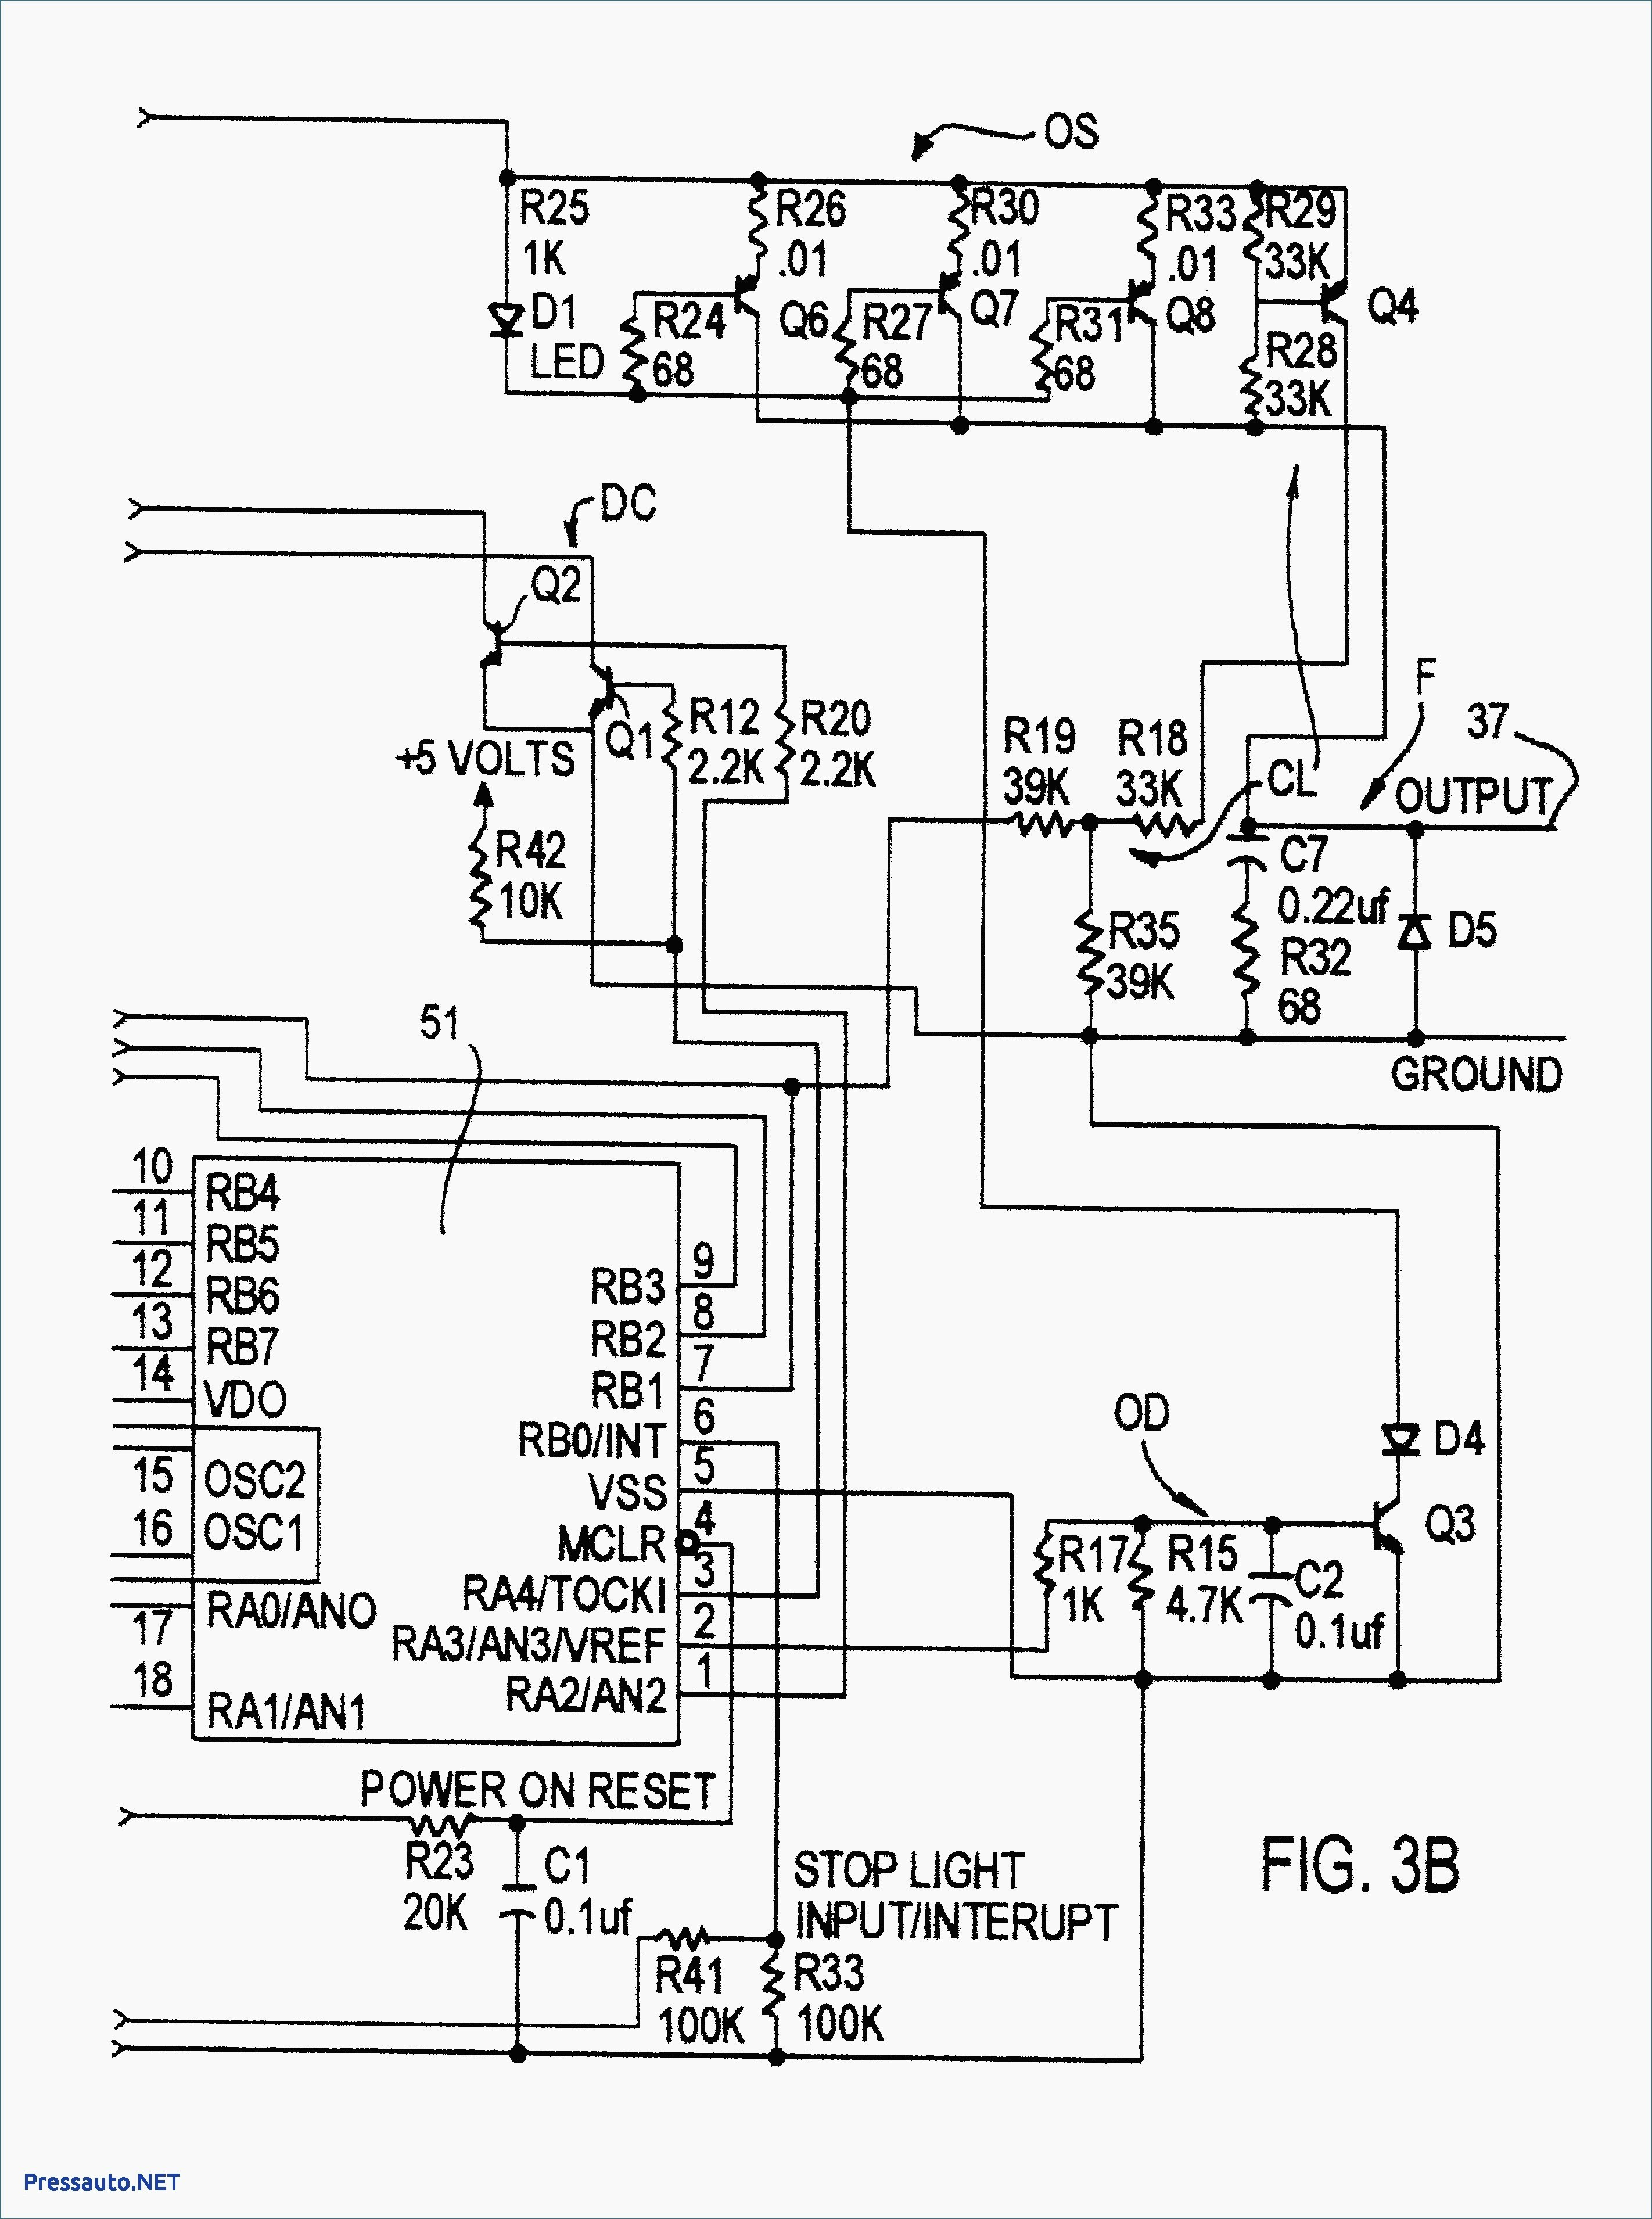 2002 mitsubishi galant engine diagram solar controller wiring panel charge anonymerfo 2001 schematic library detoxicrecenzecom wp content uploads 2018 09